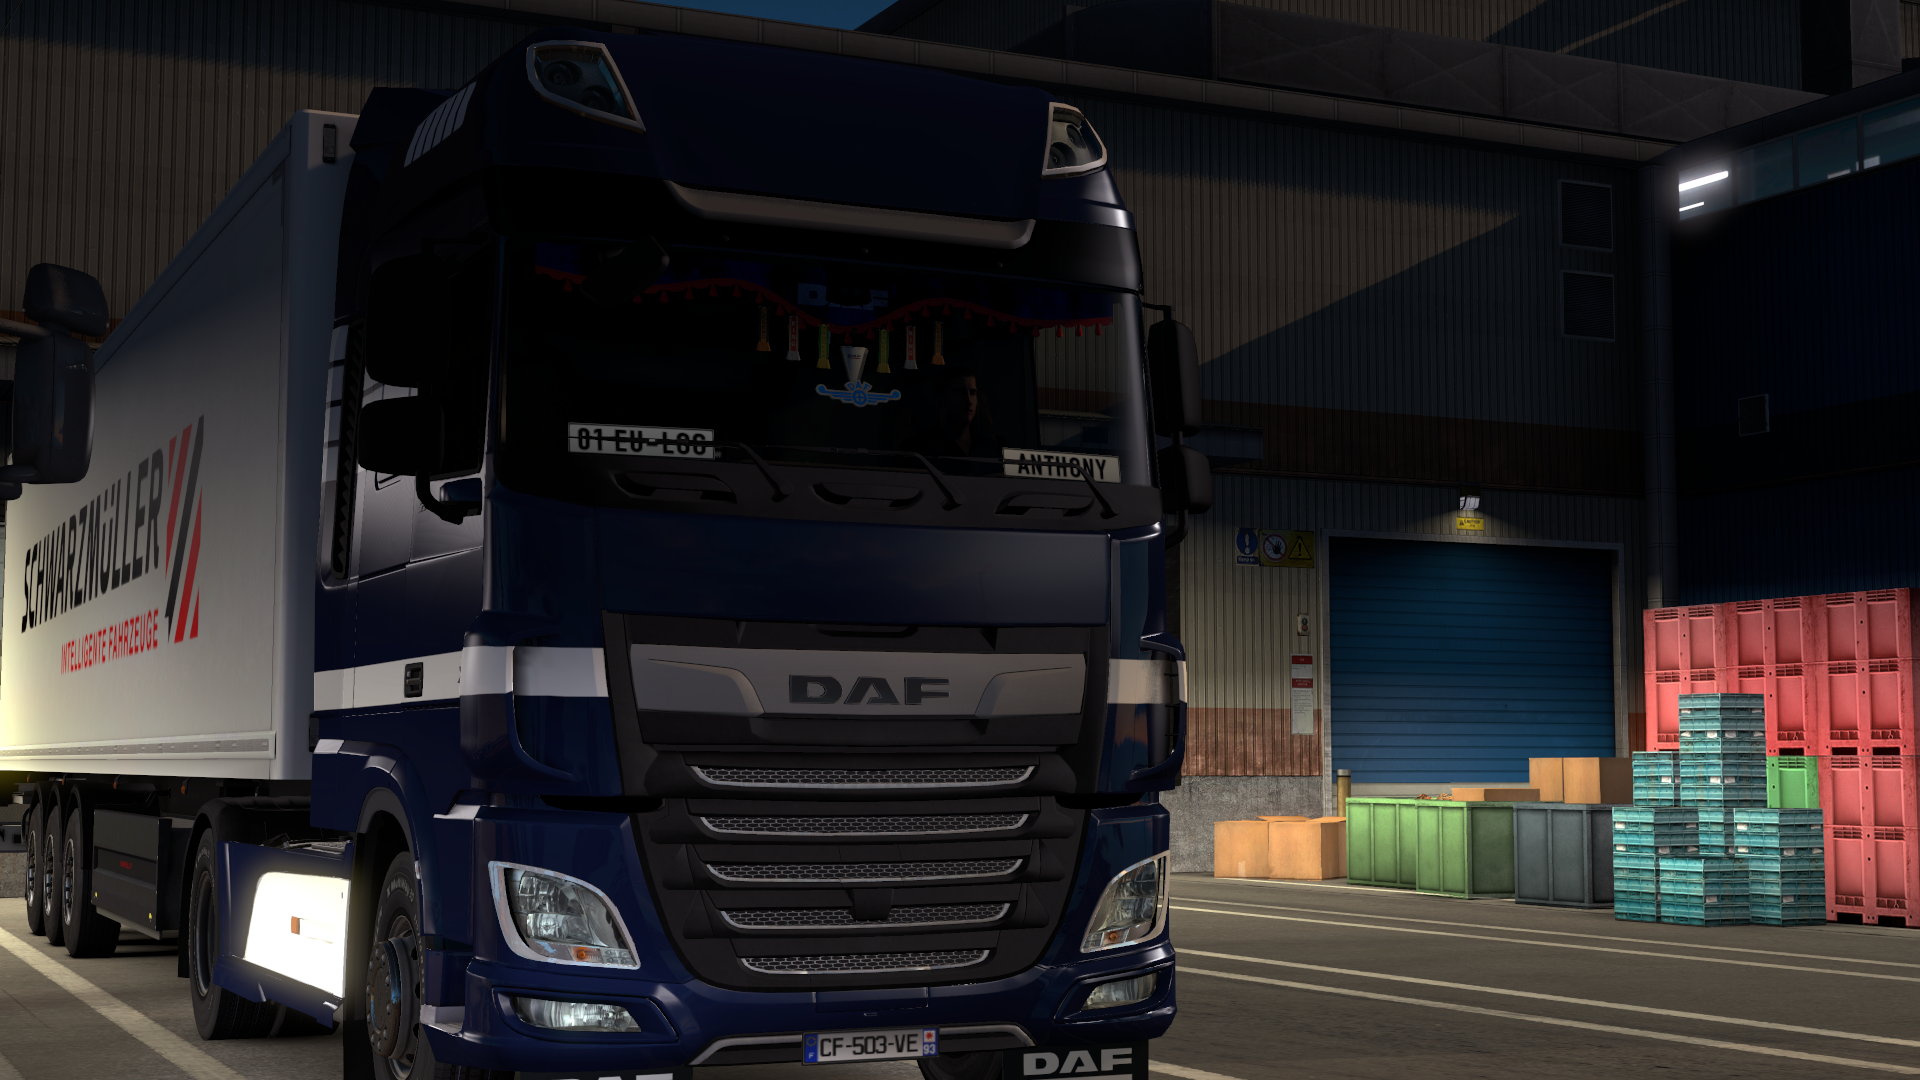 ets2_20180804_181800_00.png